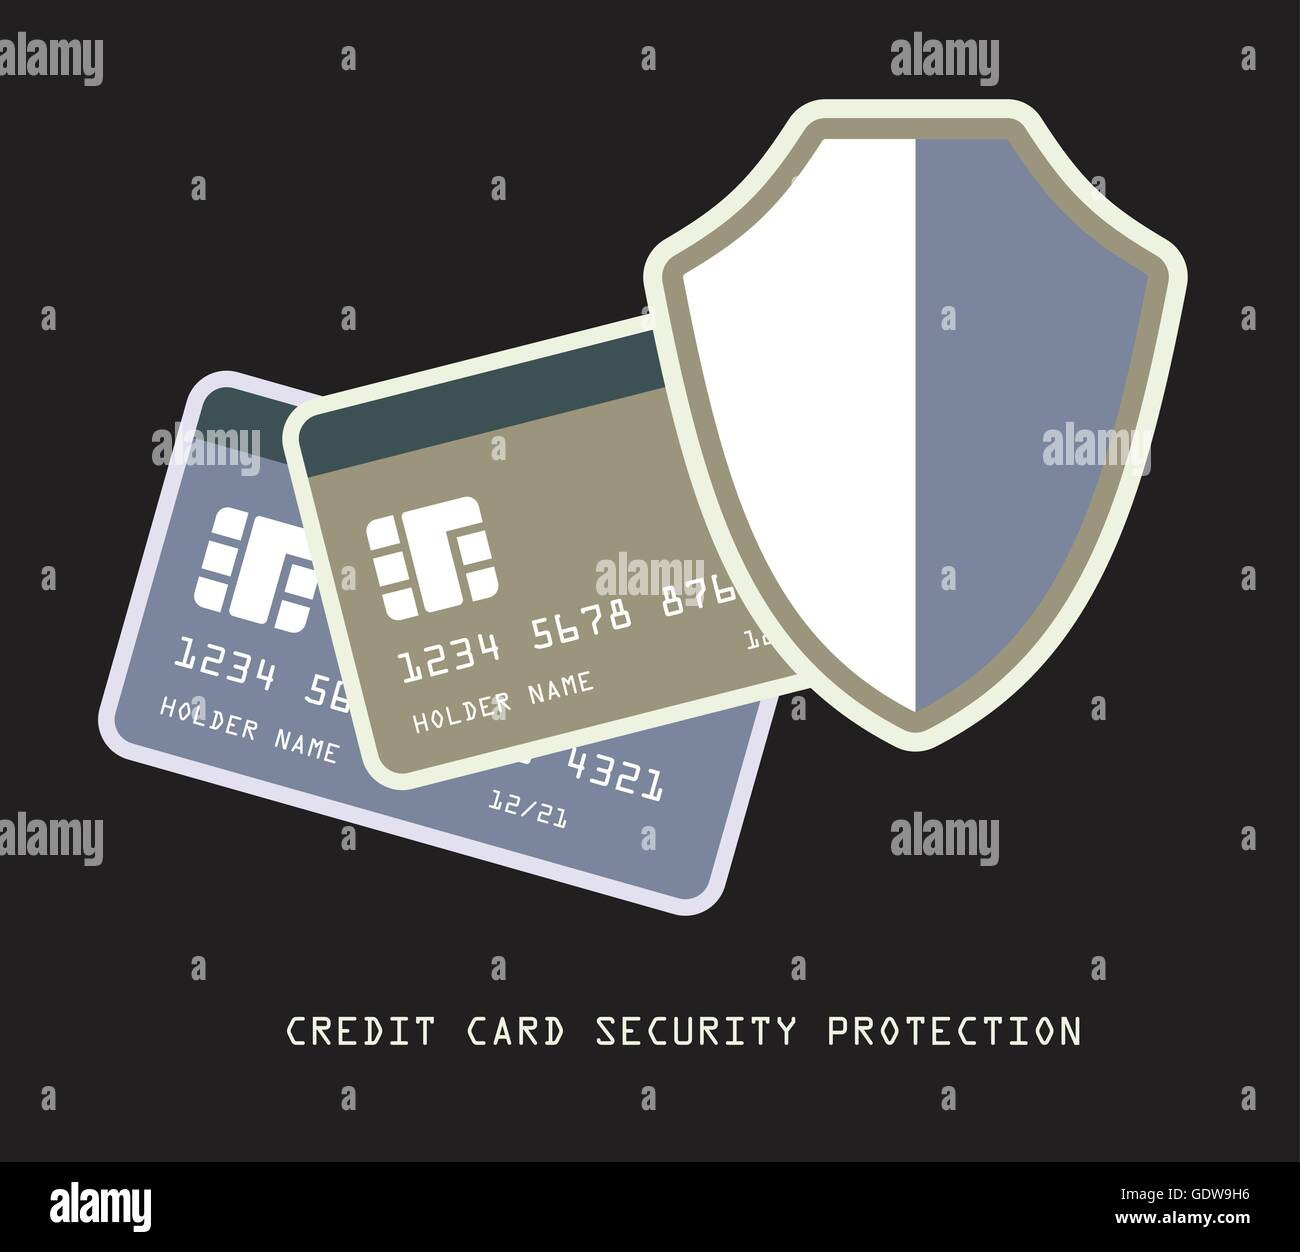 credit card modern banking security protection concept vector dark background illustration - Stock Image